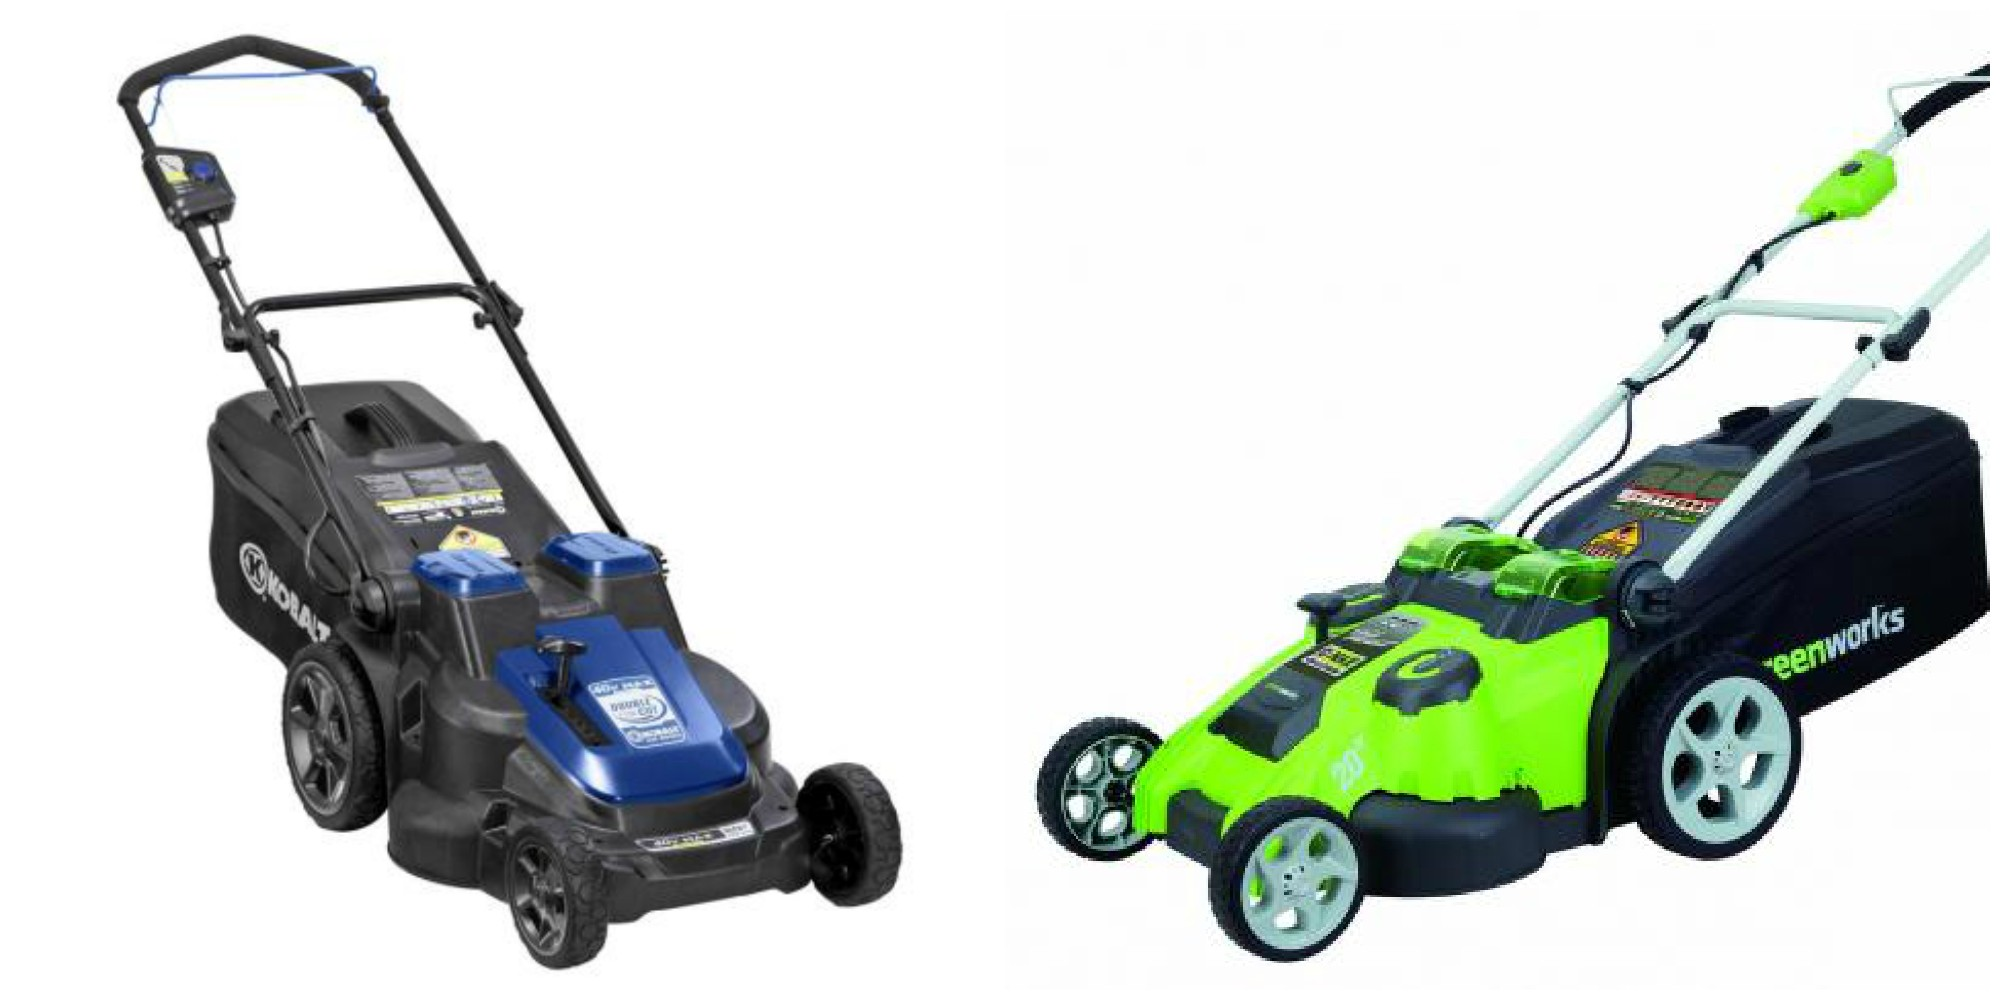 Fire hazard prompts recall of 28,000 cordless electric lawn